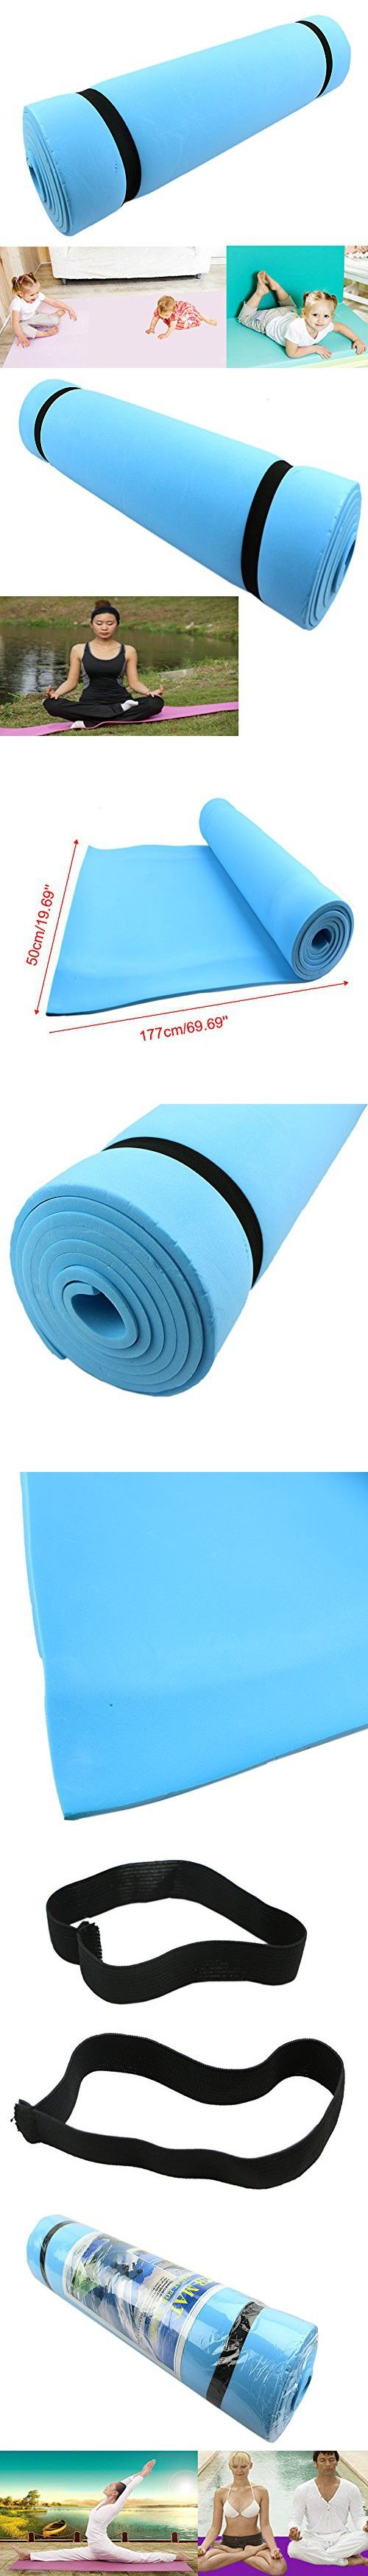 Fanshop® Blue Eco-friendly Dampproof Sleeping Mattress Mat Exercise EVA Foam Yoga Pad